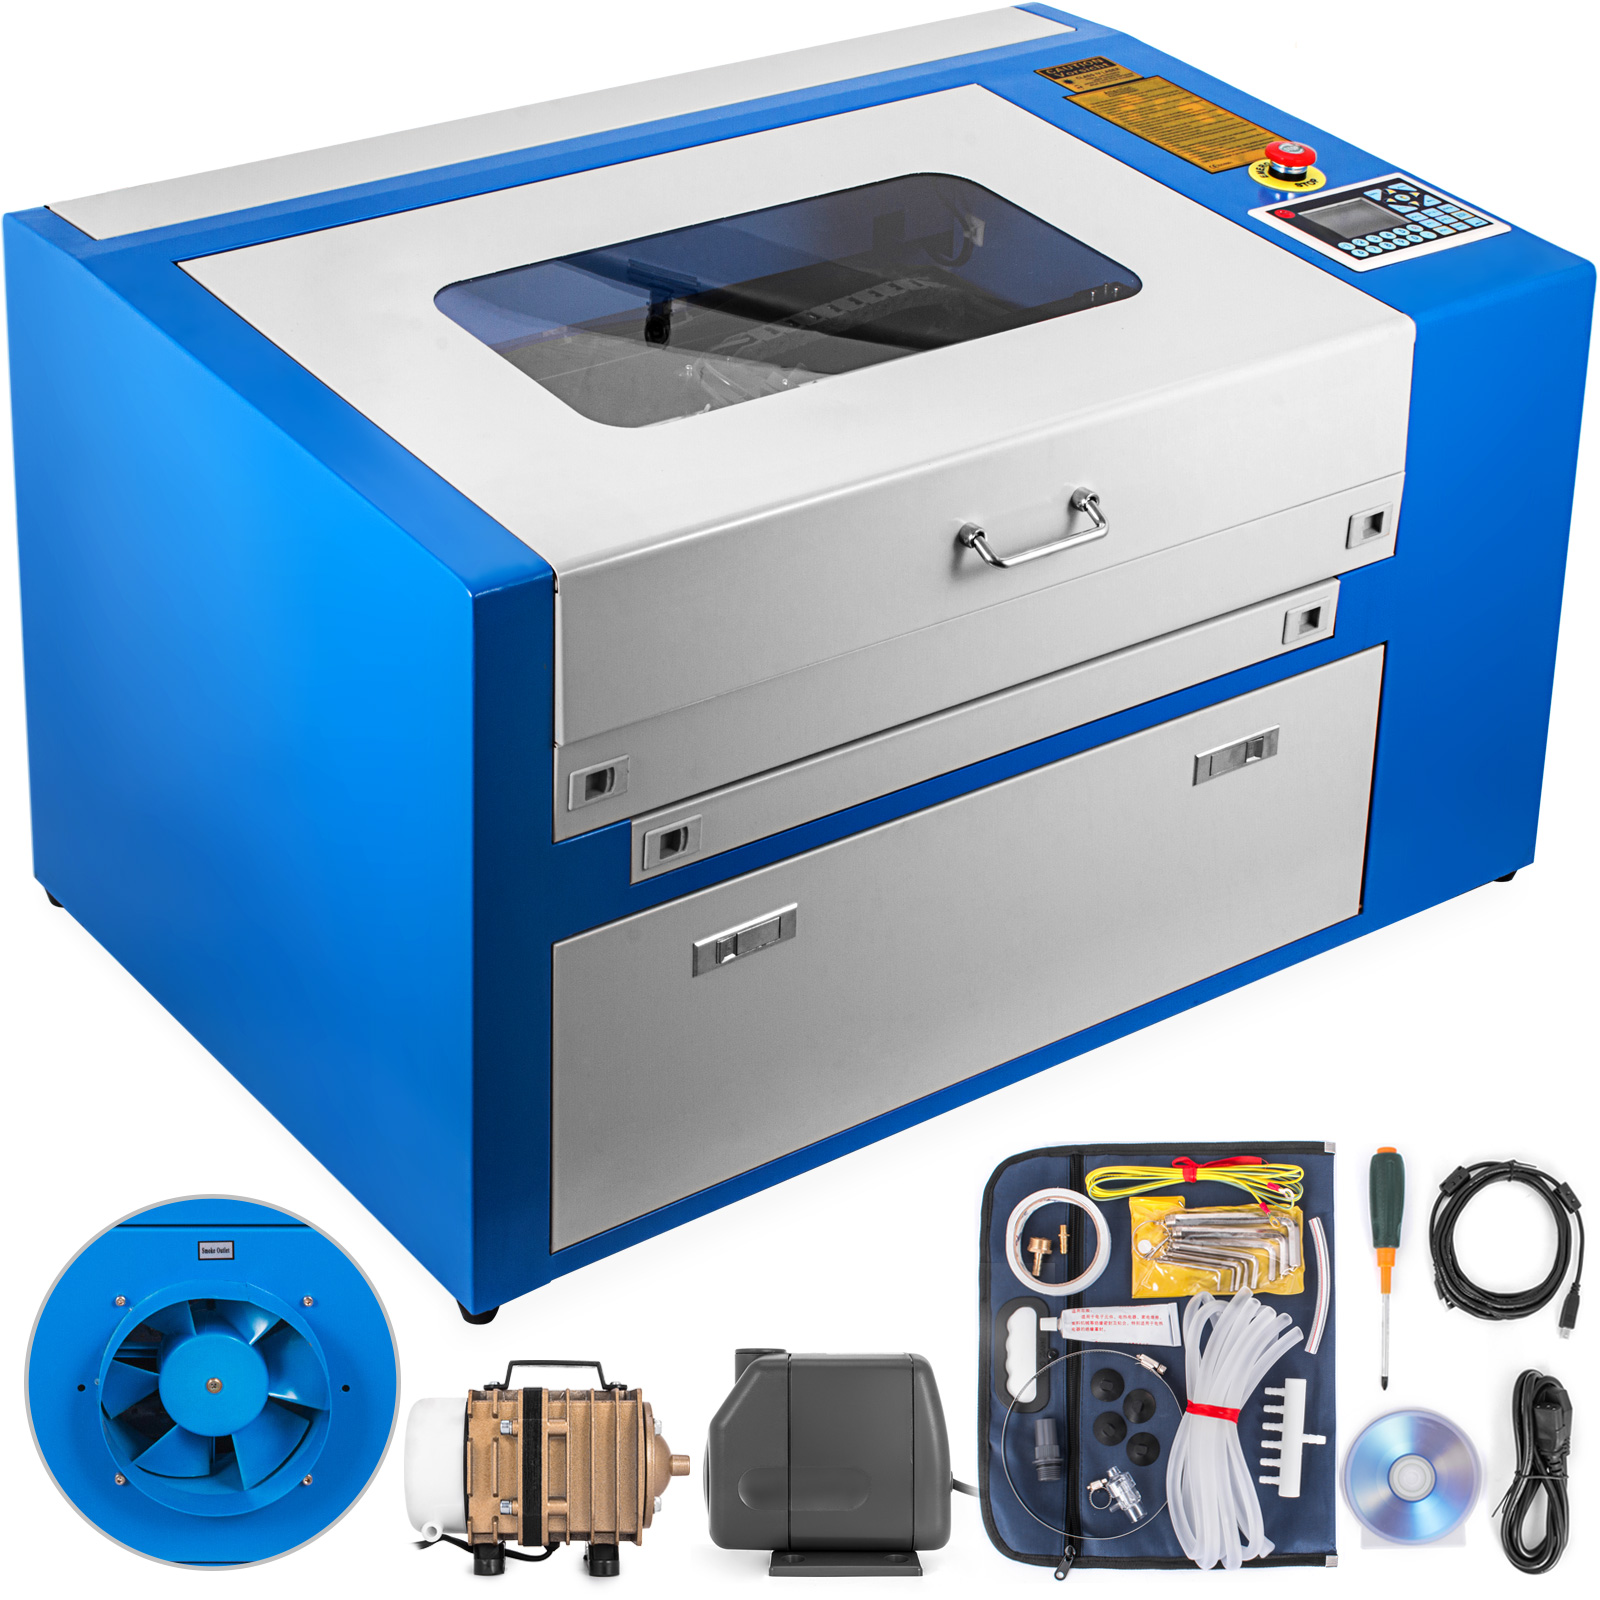 machine laser graver co2 cutter 50w laser engraver engraving machine printer ebay. Black Bedroom Furniture Sets. Home Design Ideas